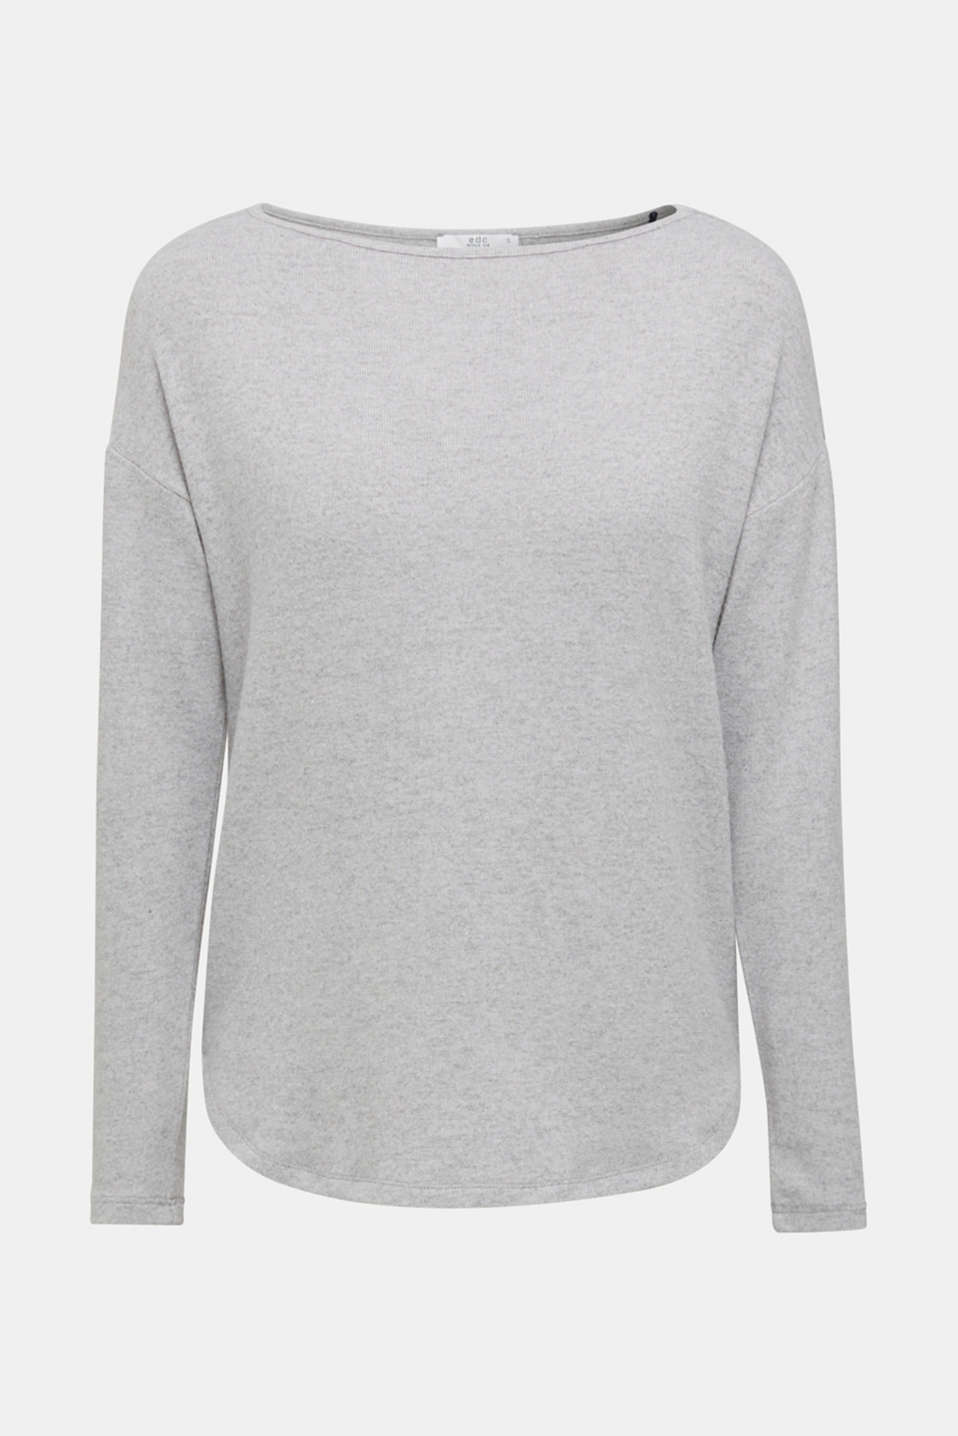 Fluffy long sleeve top trimmed with lace, LIGHT GREY 5, detail image number 7